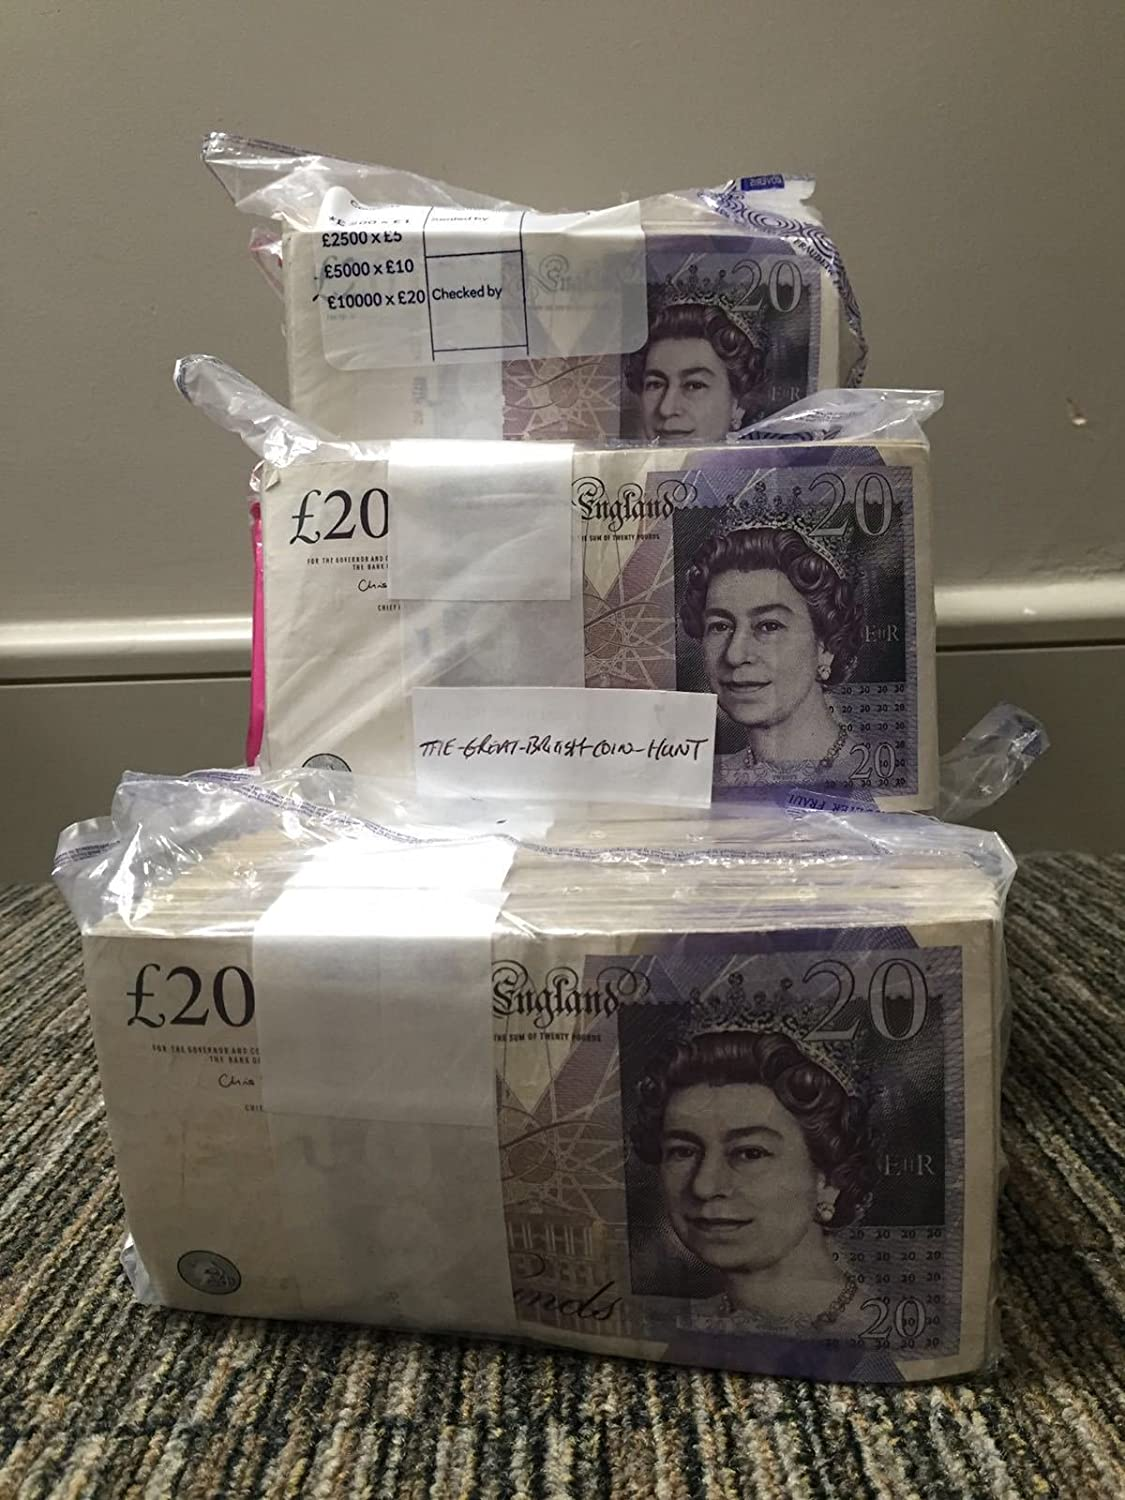 TGBCH One Single VGC pound;20 Note Random Serial Number Chris Salmon Trusted Seller